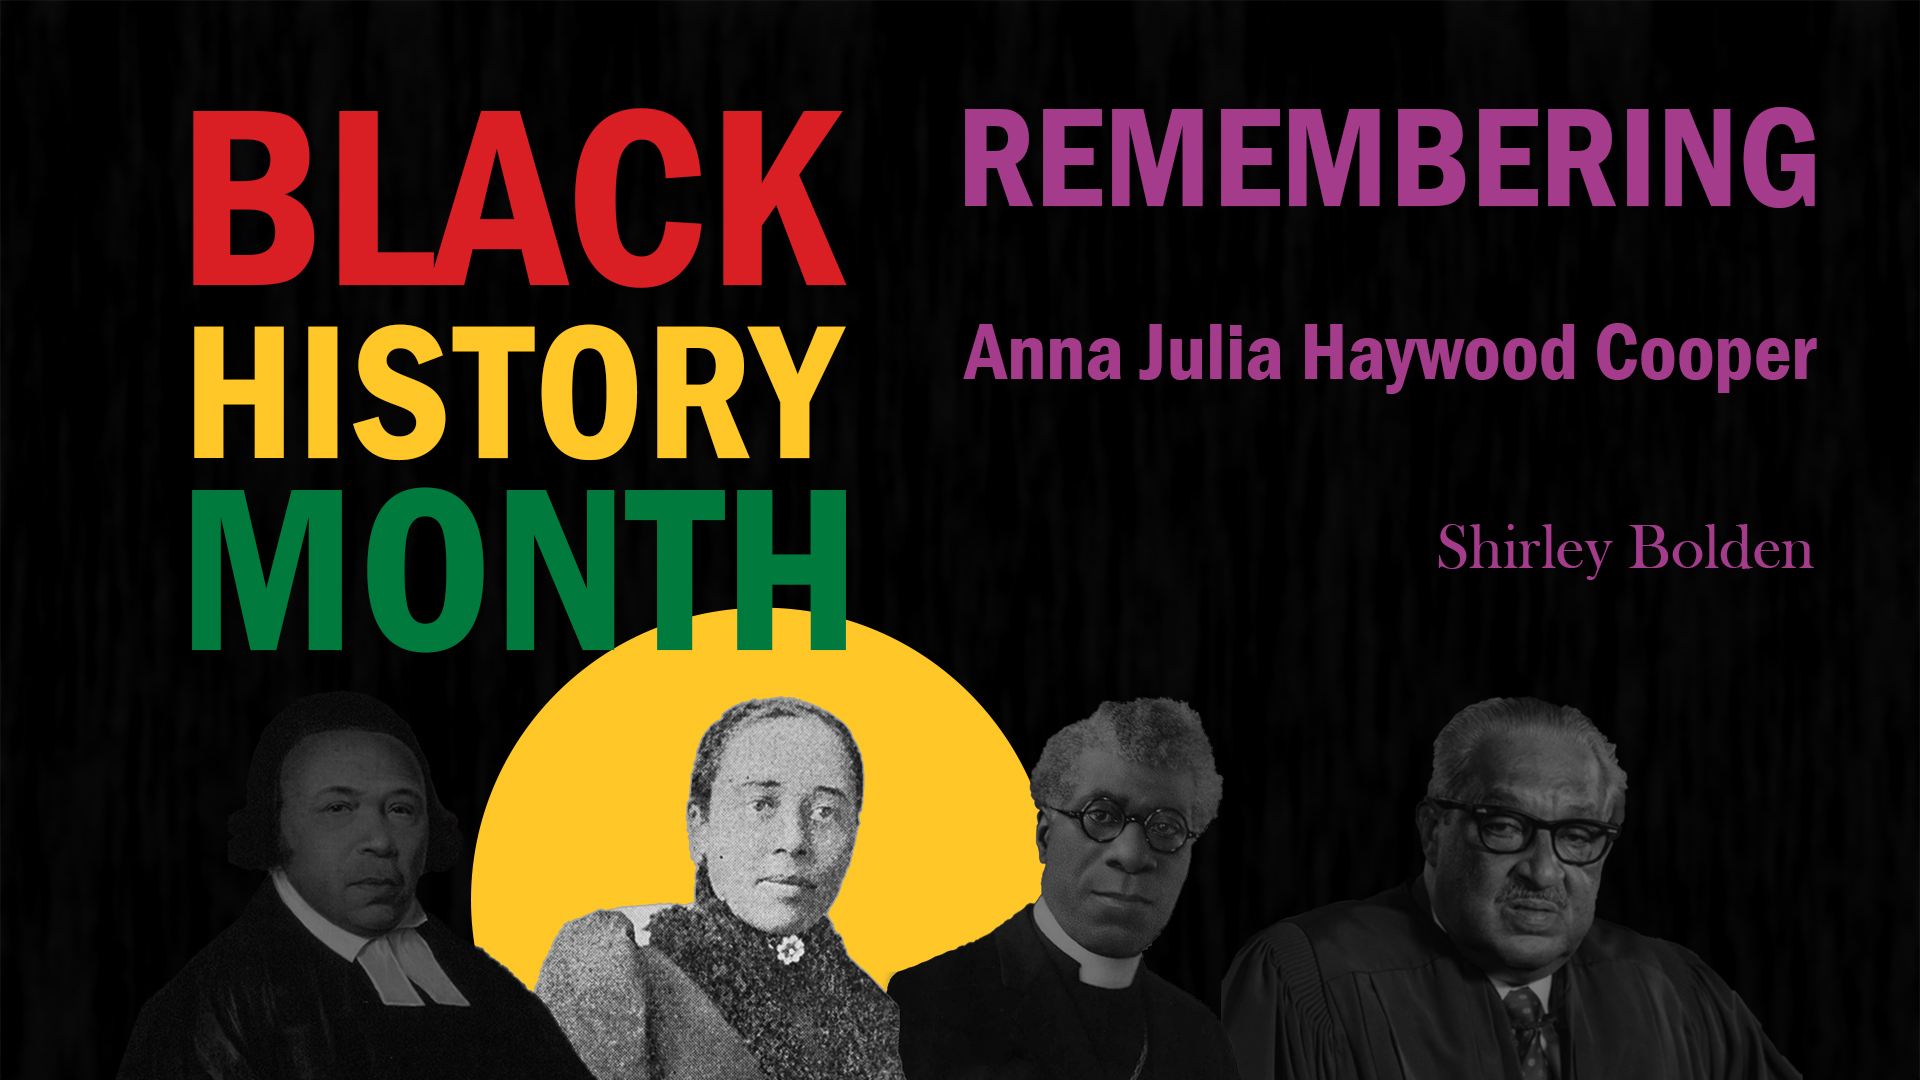 Black History Month. Remembering Anna Julia Haywood Cooper